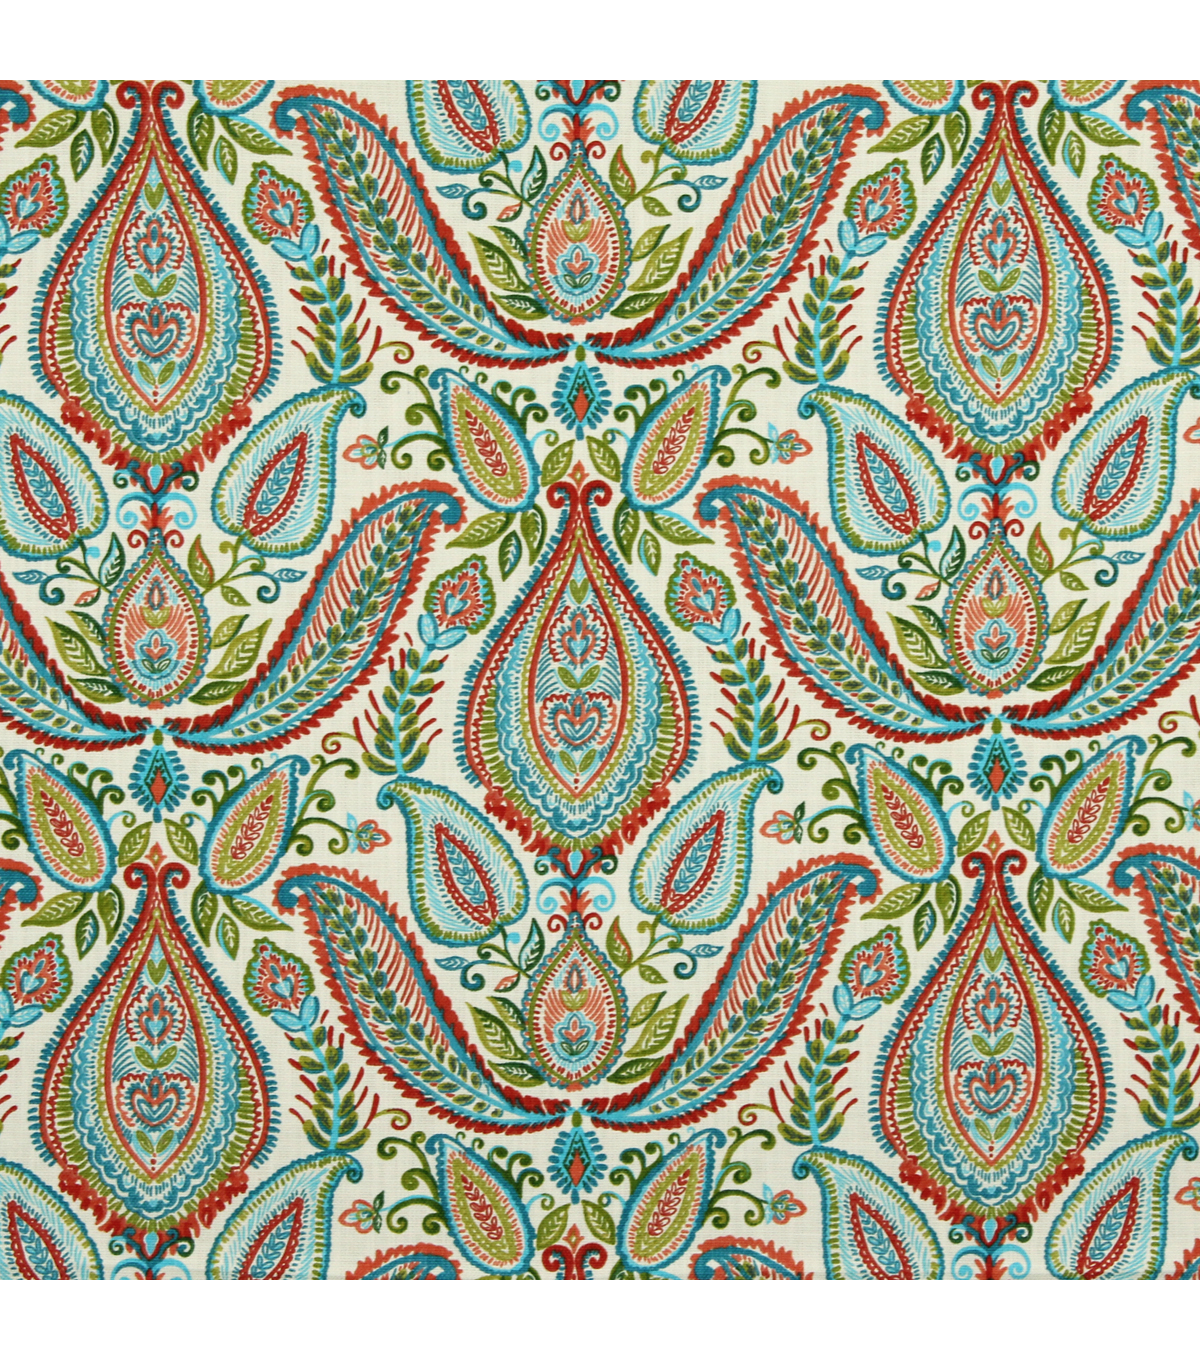 Home Decor 8\u0022x8\u0022 Fabric Swatch-Ombre Paisley / Poppy